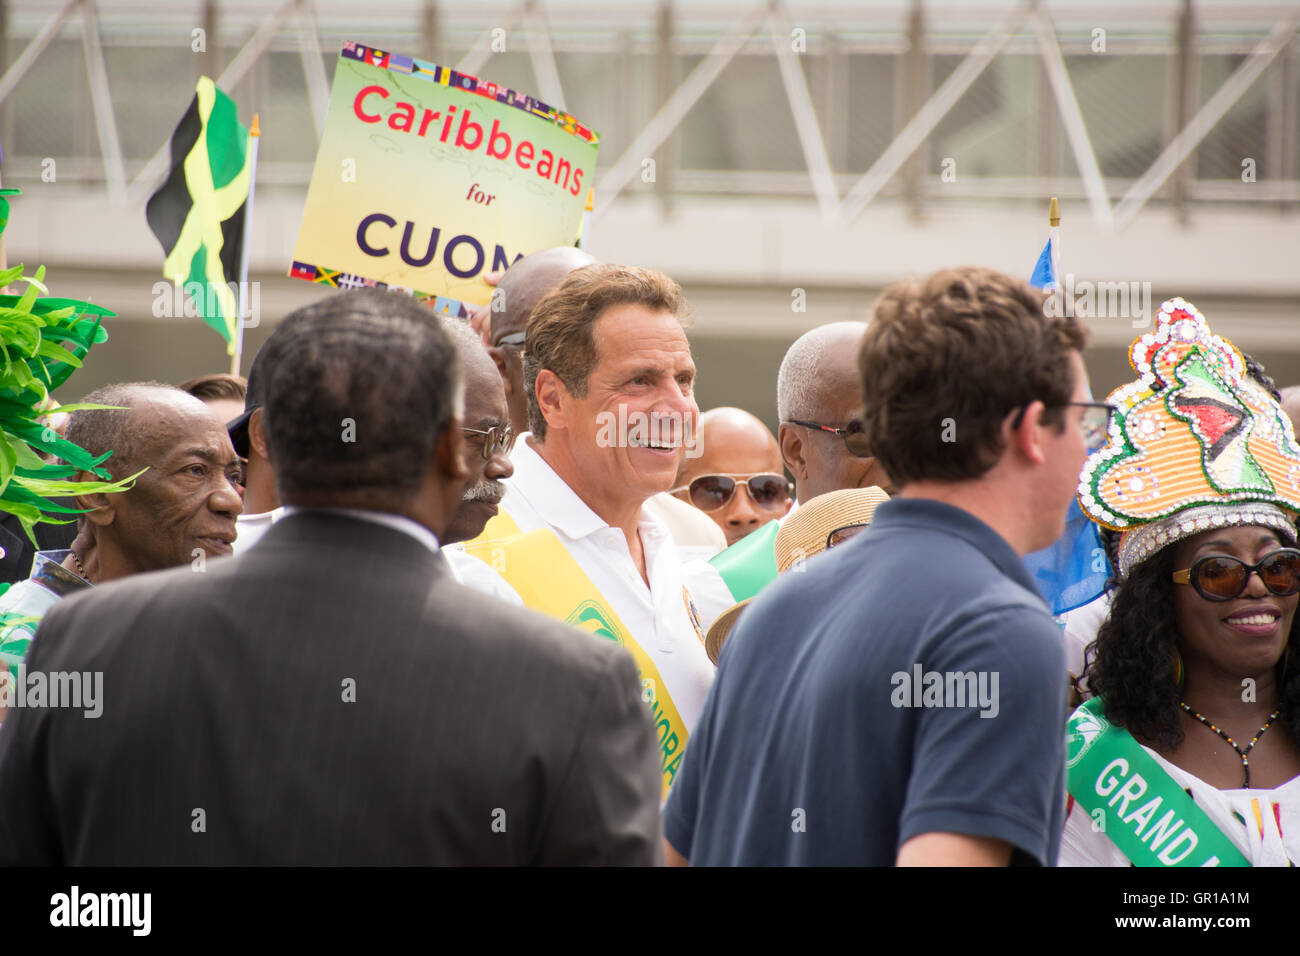 New York, NY. 5th September, 2016. New York Governor Andrew Cuomo greets the crowd. More than a million enjoyed - Stock Image